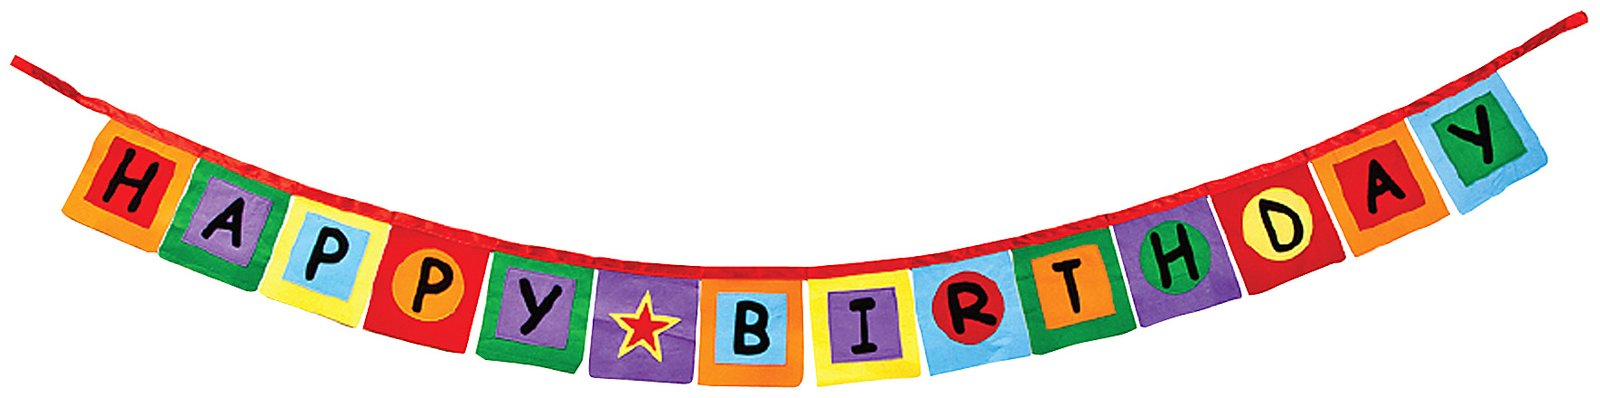 Happy birthday banner clip art free clipart images 2